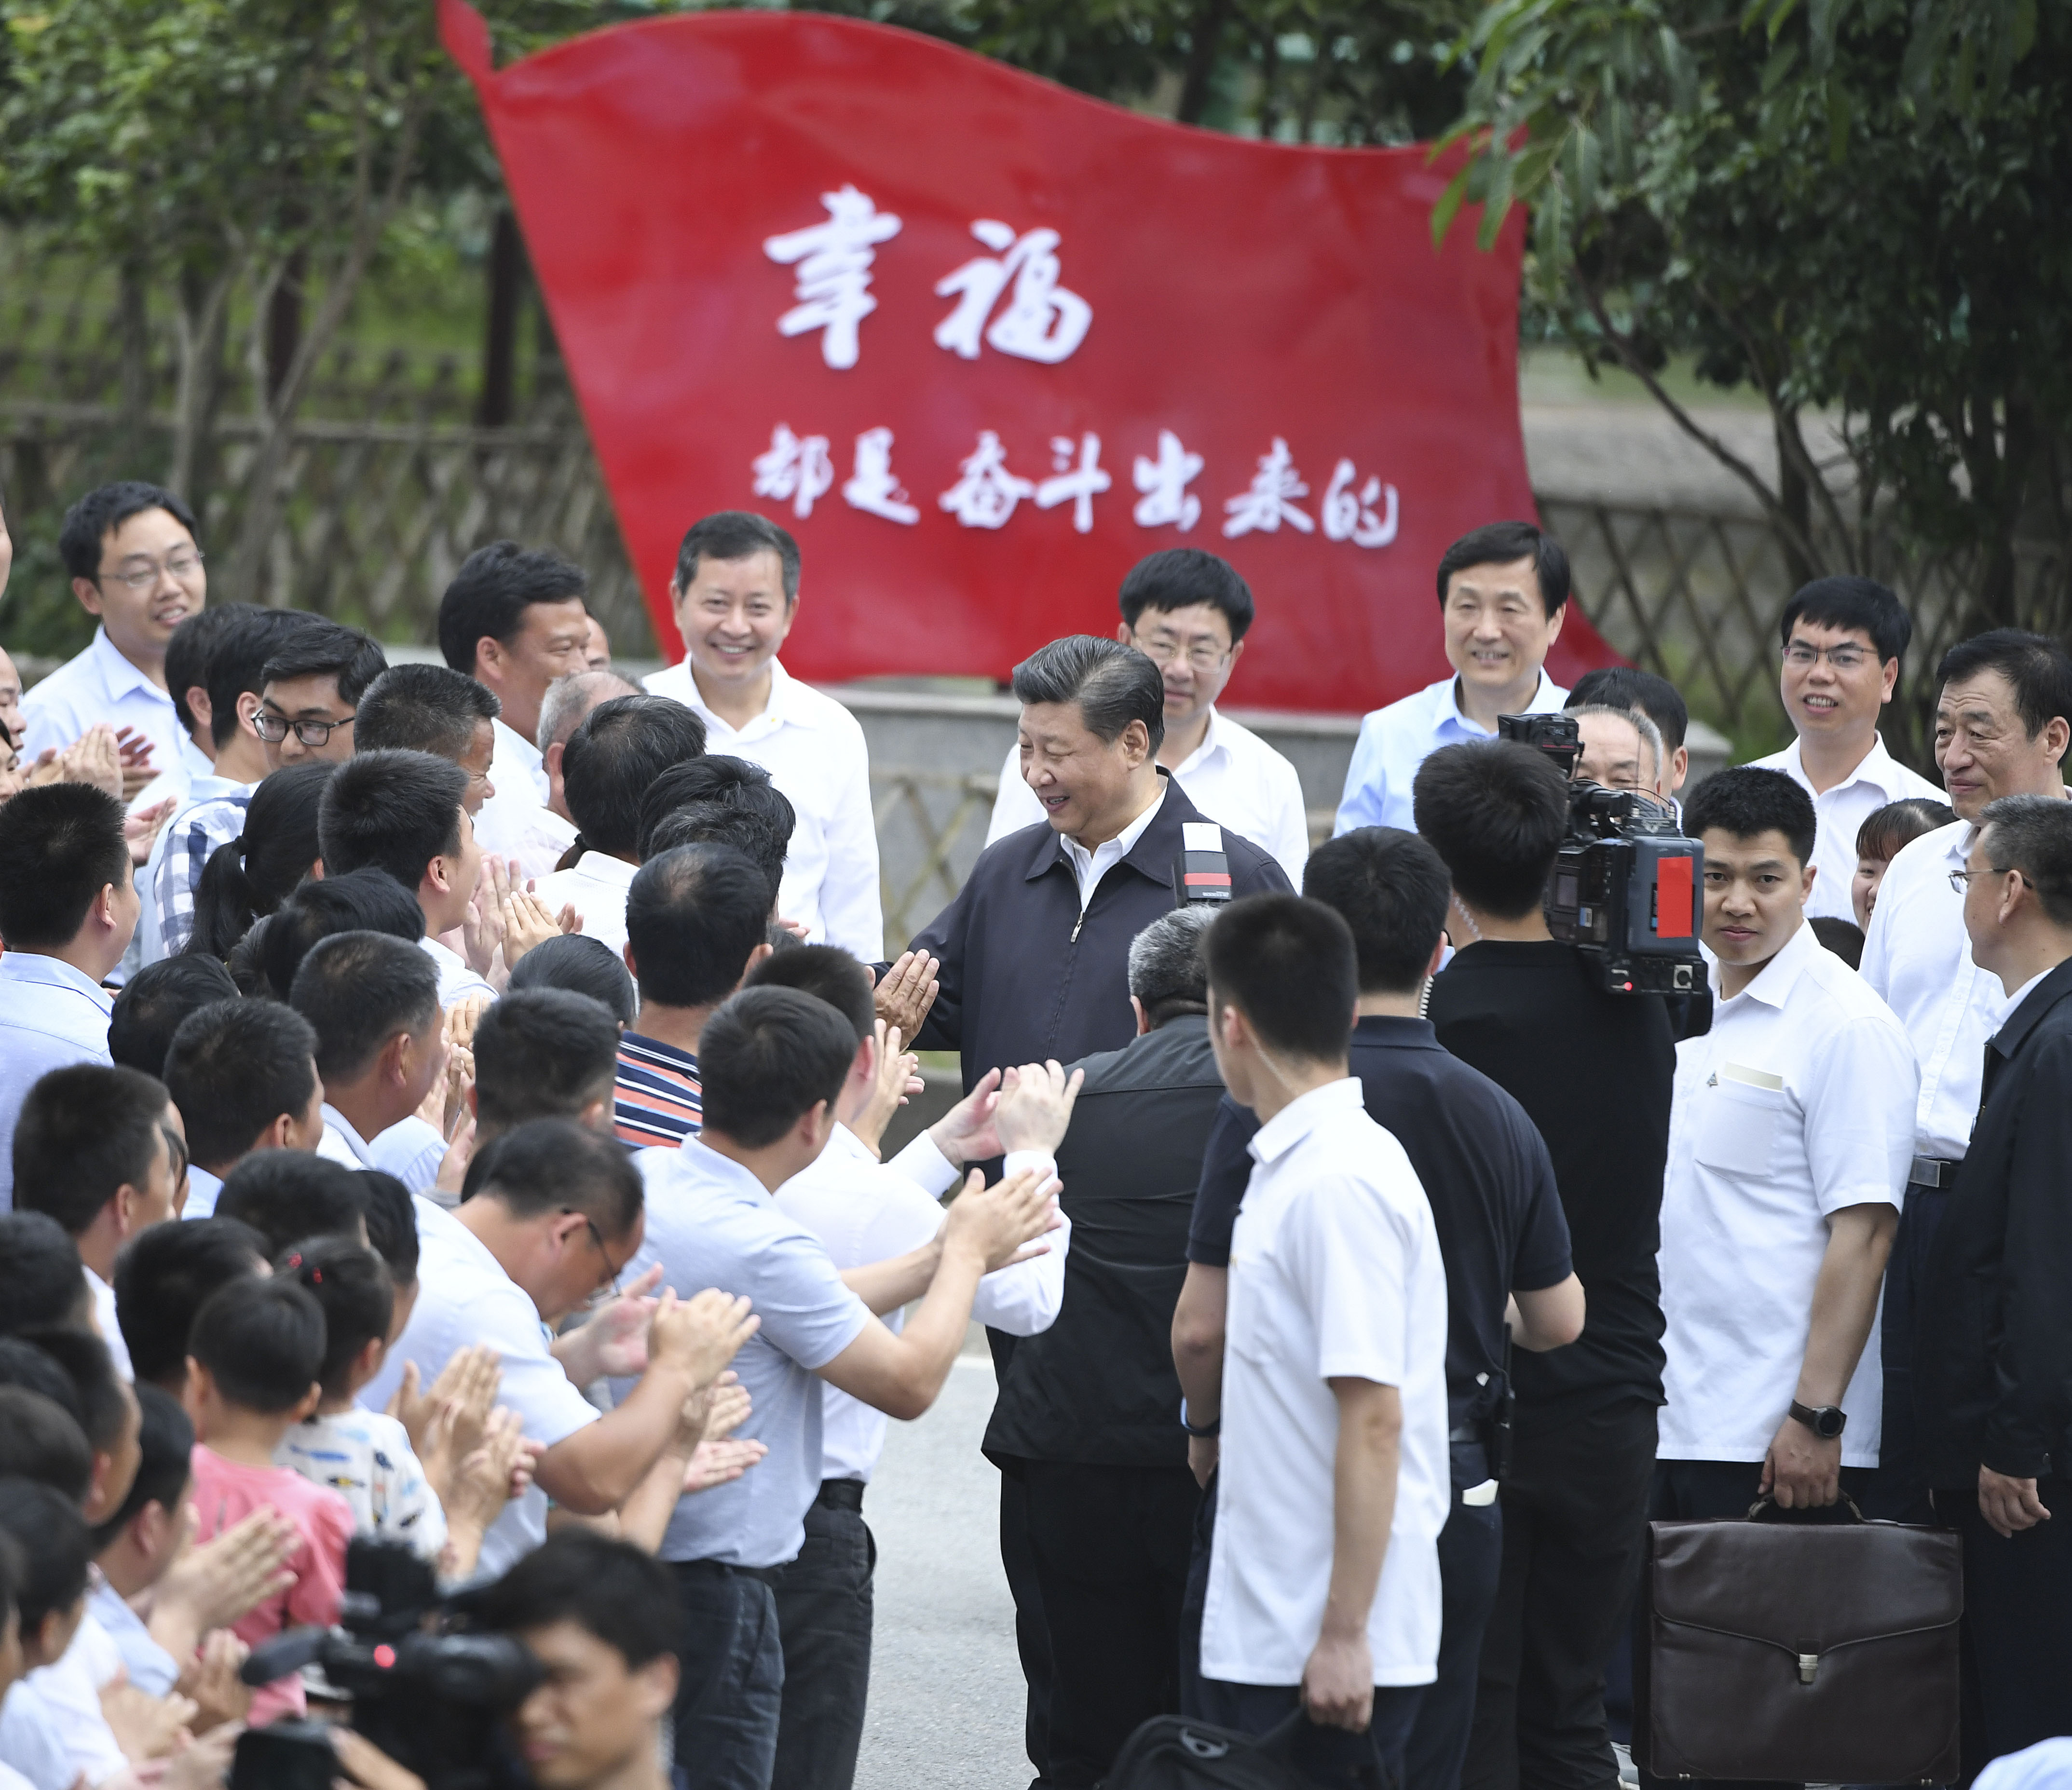 President Xi visited local residents in Tantou Village, Jiangxi Province